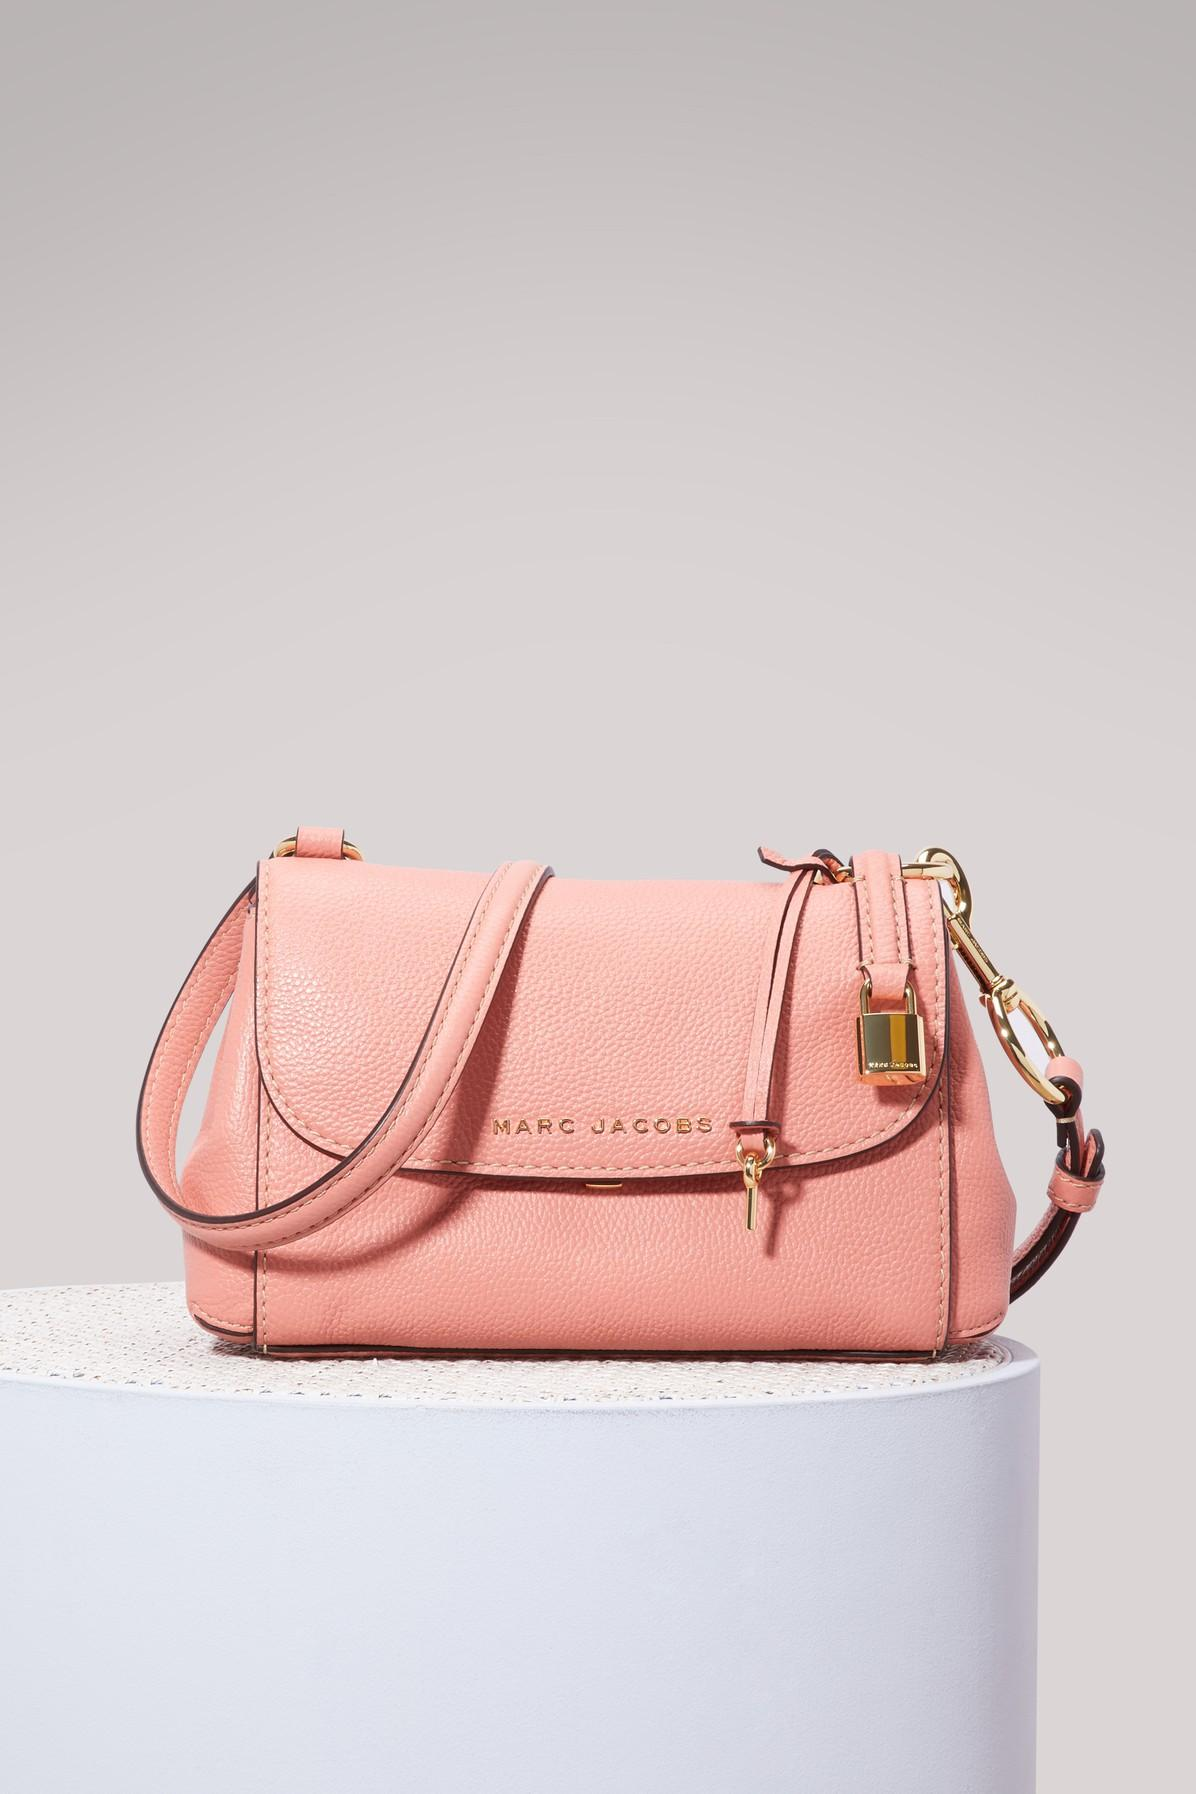 9226a6f83b7eb Marc Jacobs Mini The Boho Grind Leather Shoulder Bag - Coral